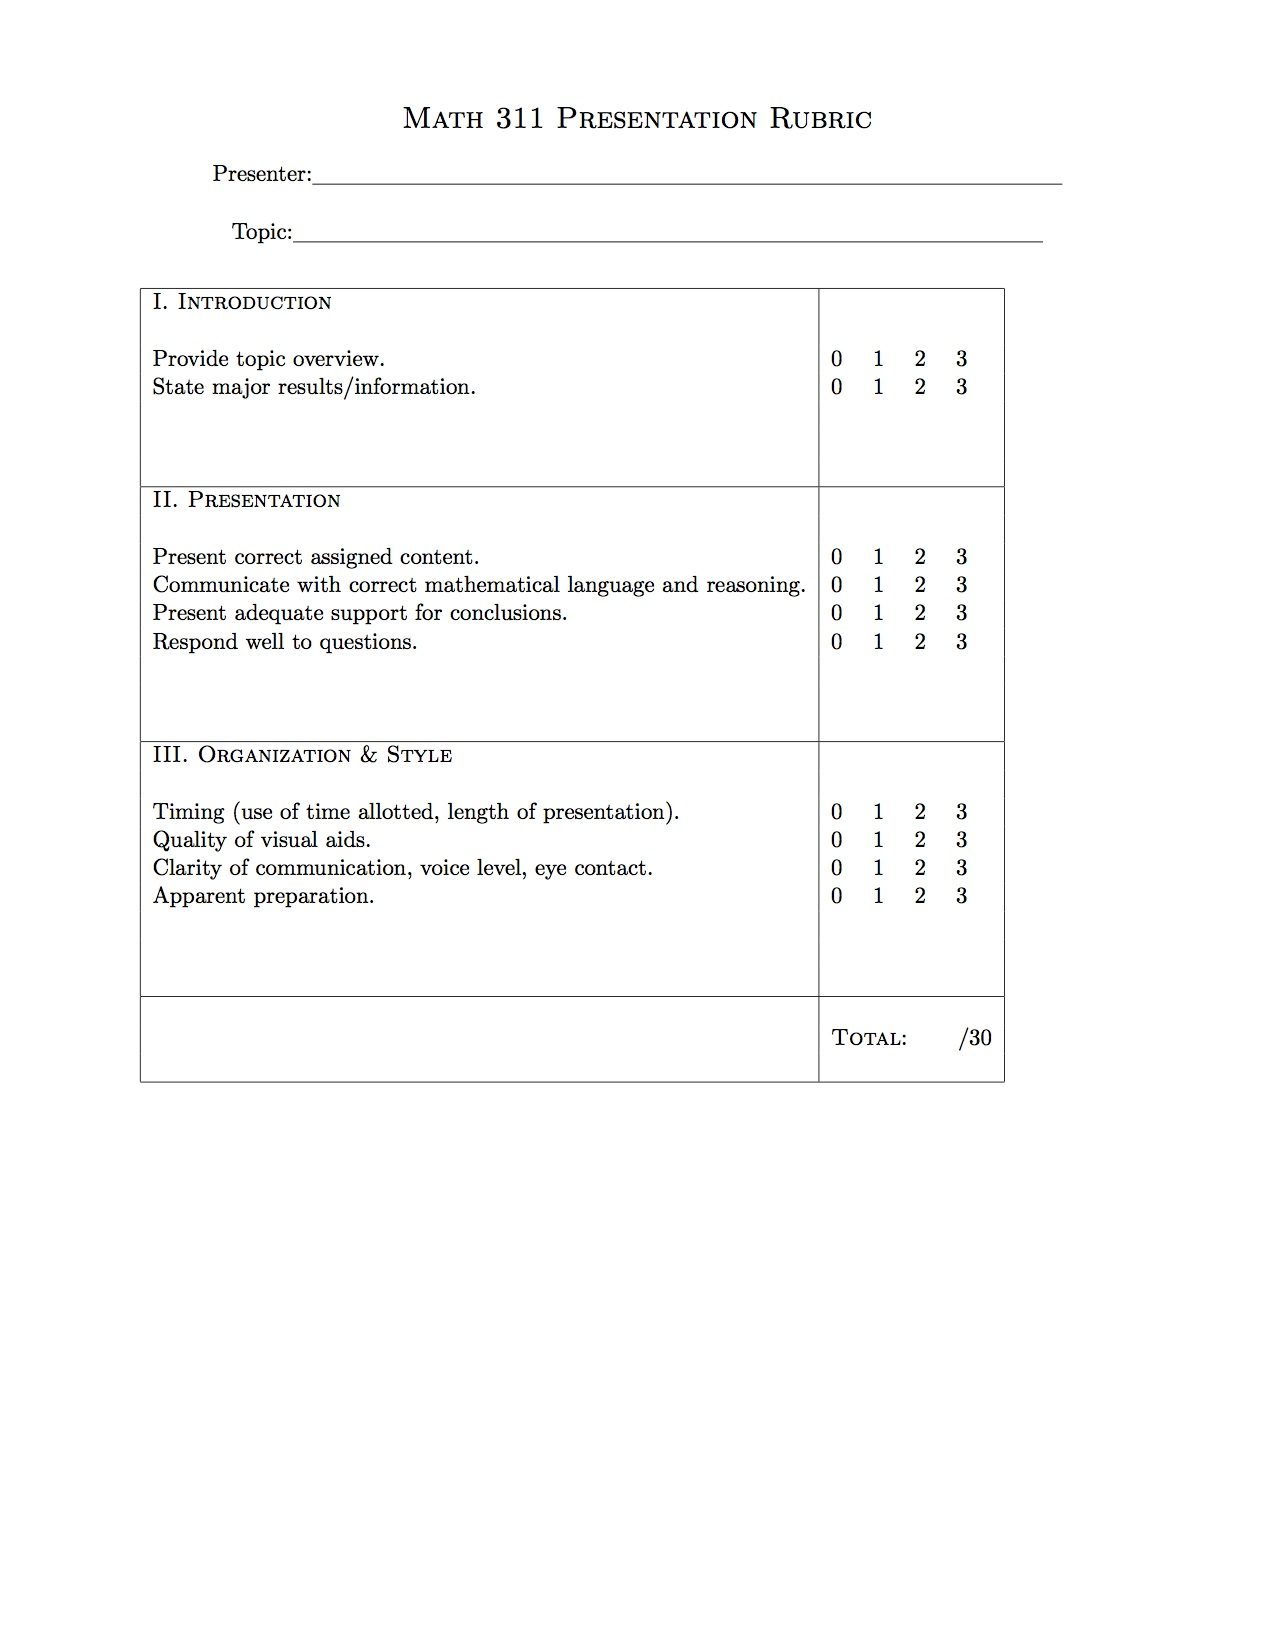 anna haensch math number theory presentation rubric